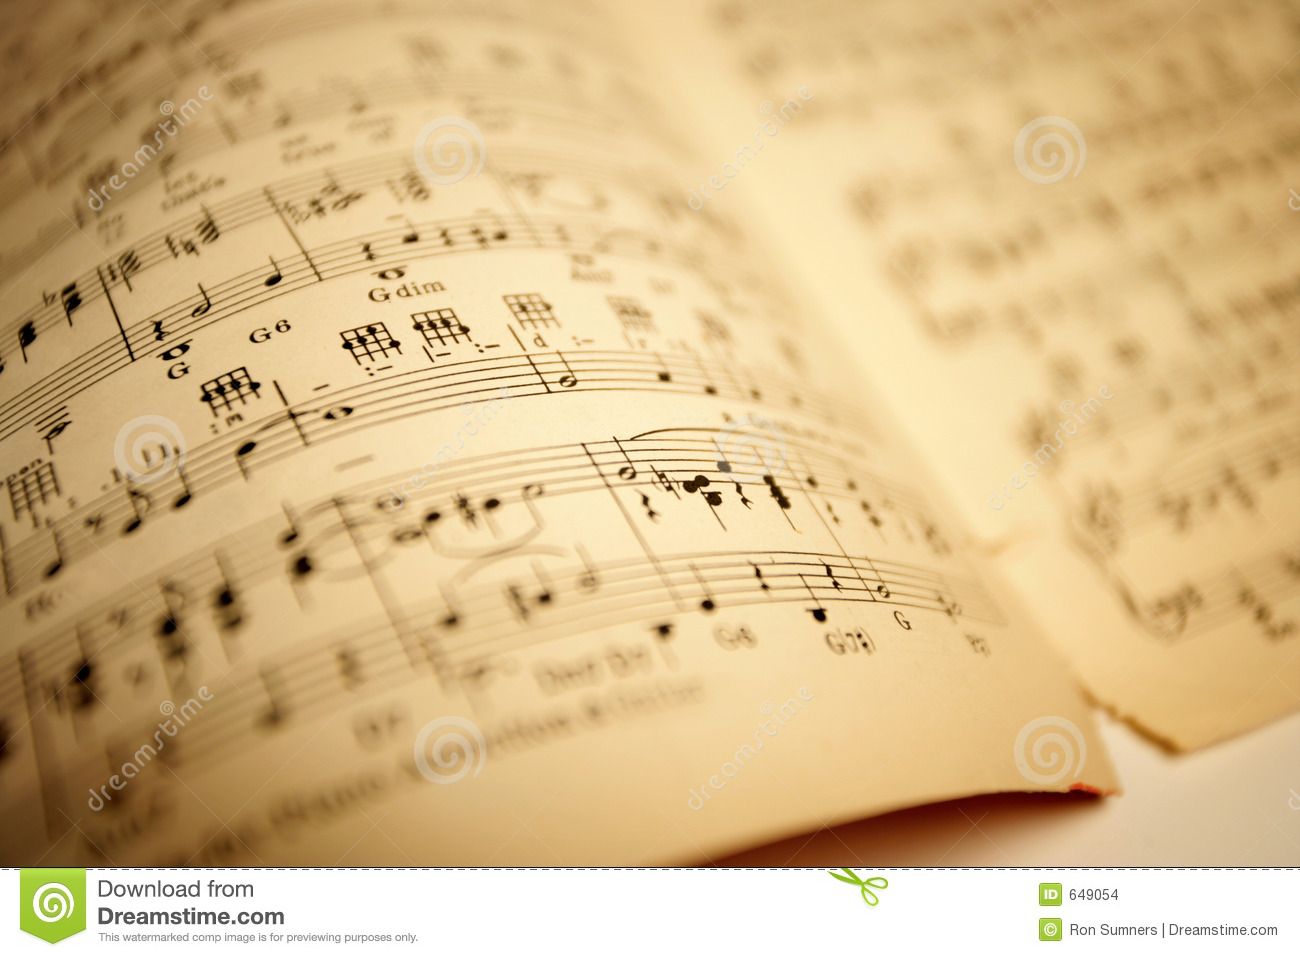 Old sheet music. Shallow depth-of-field. 11 x 16.5 inch image. Books Photography Tumblr Black And White